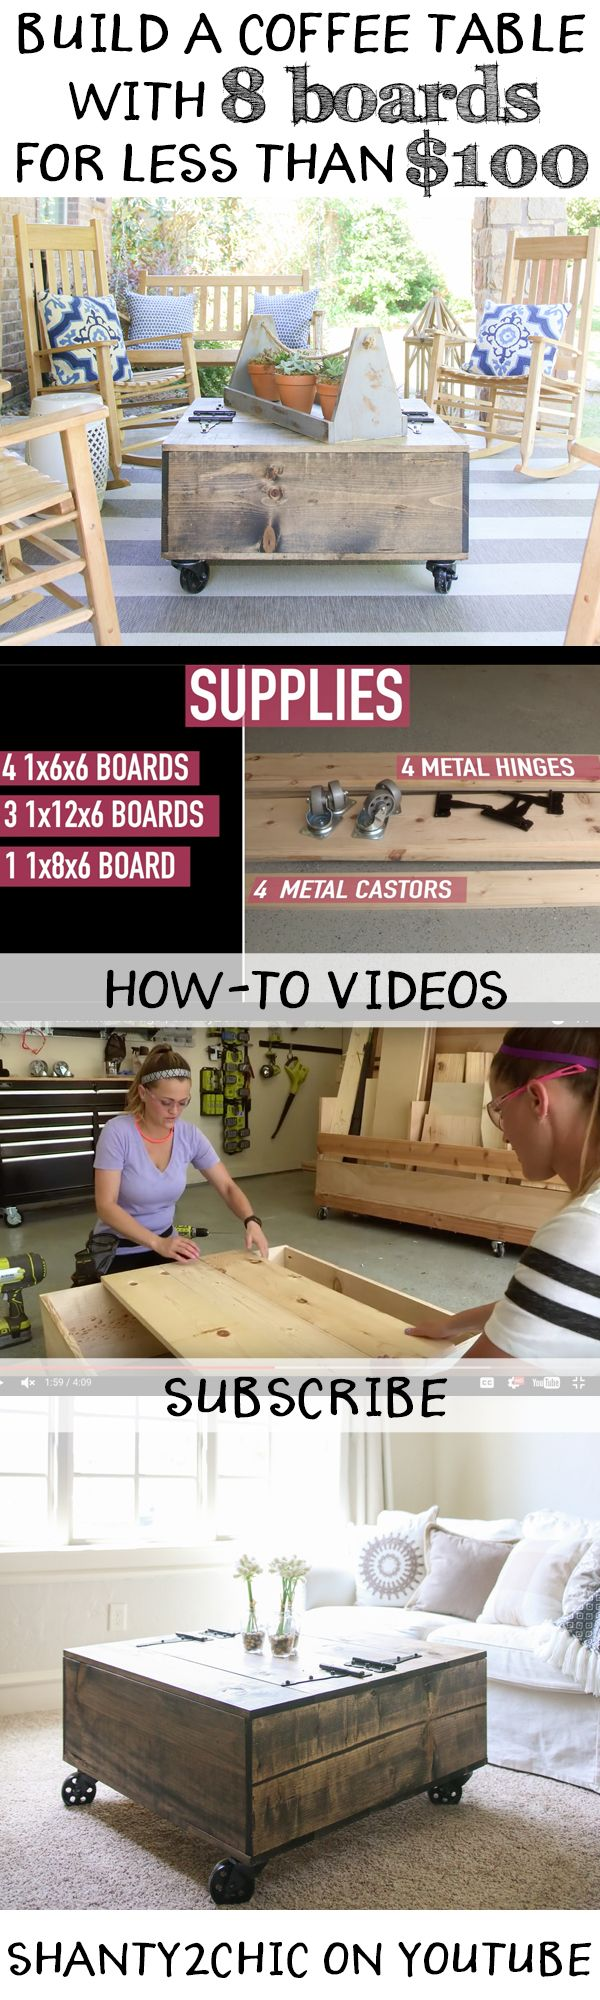 Build a custom storage coffee table with only 8 boards and for less than $100…